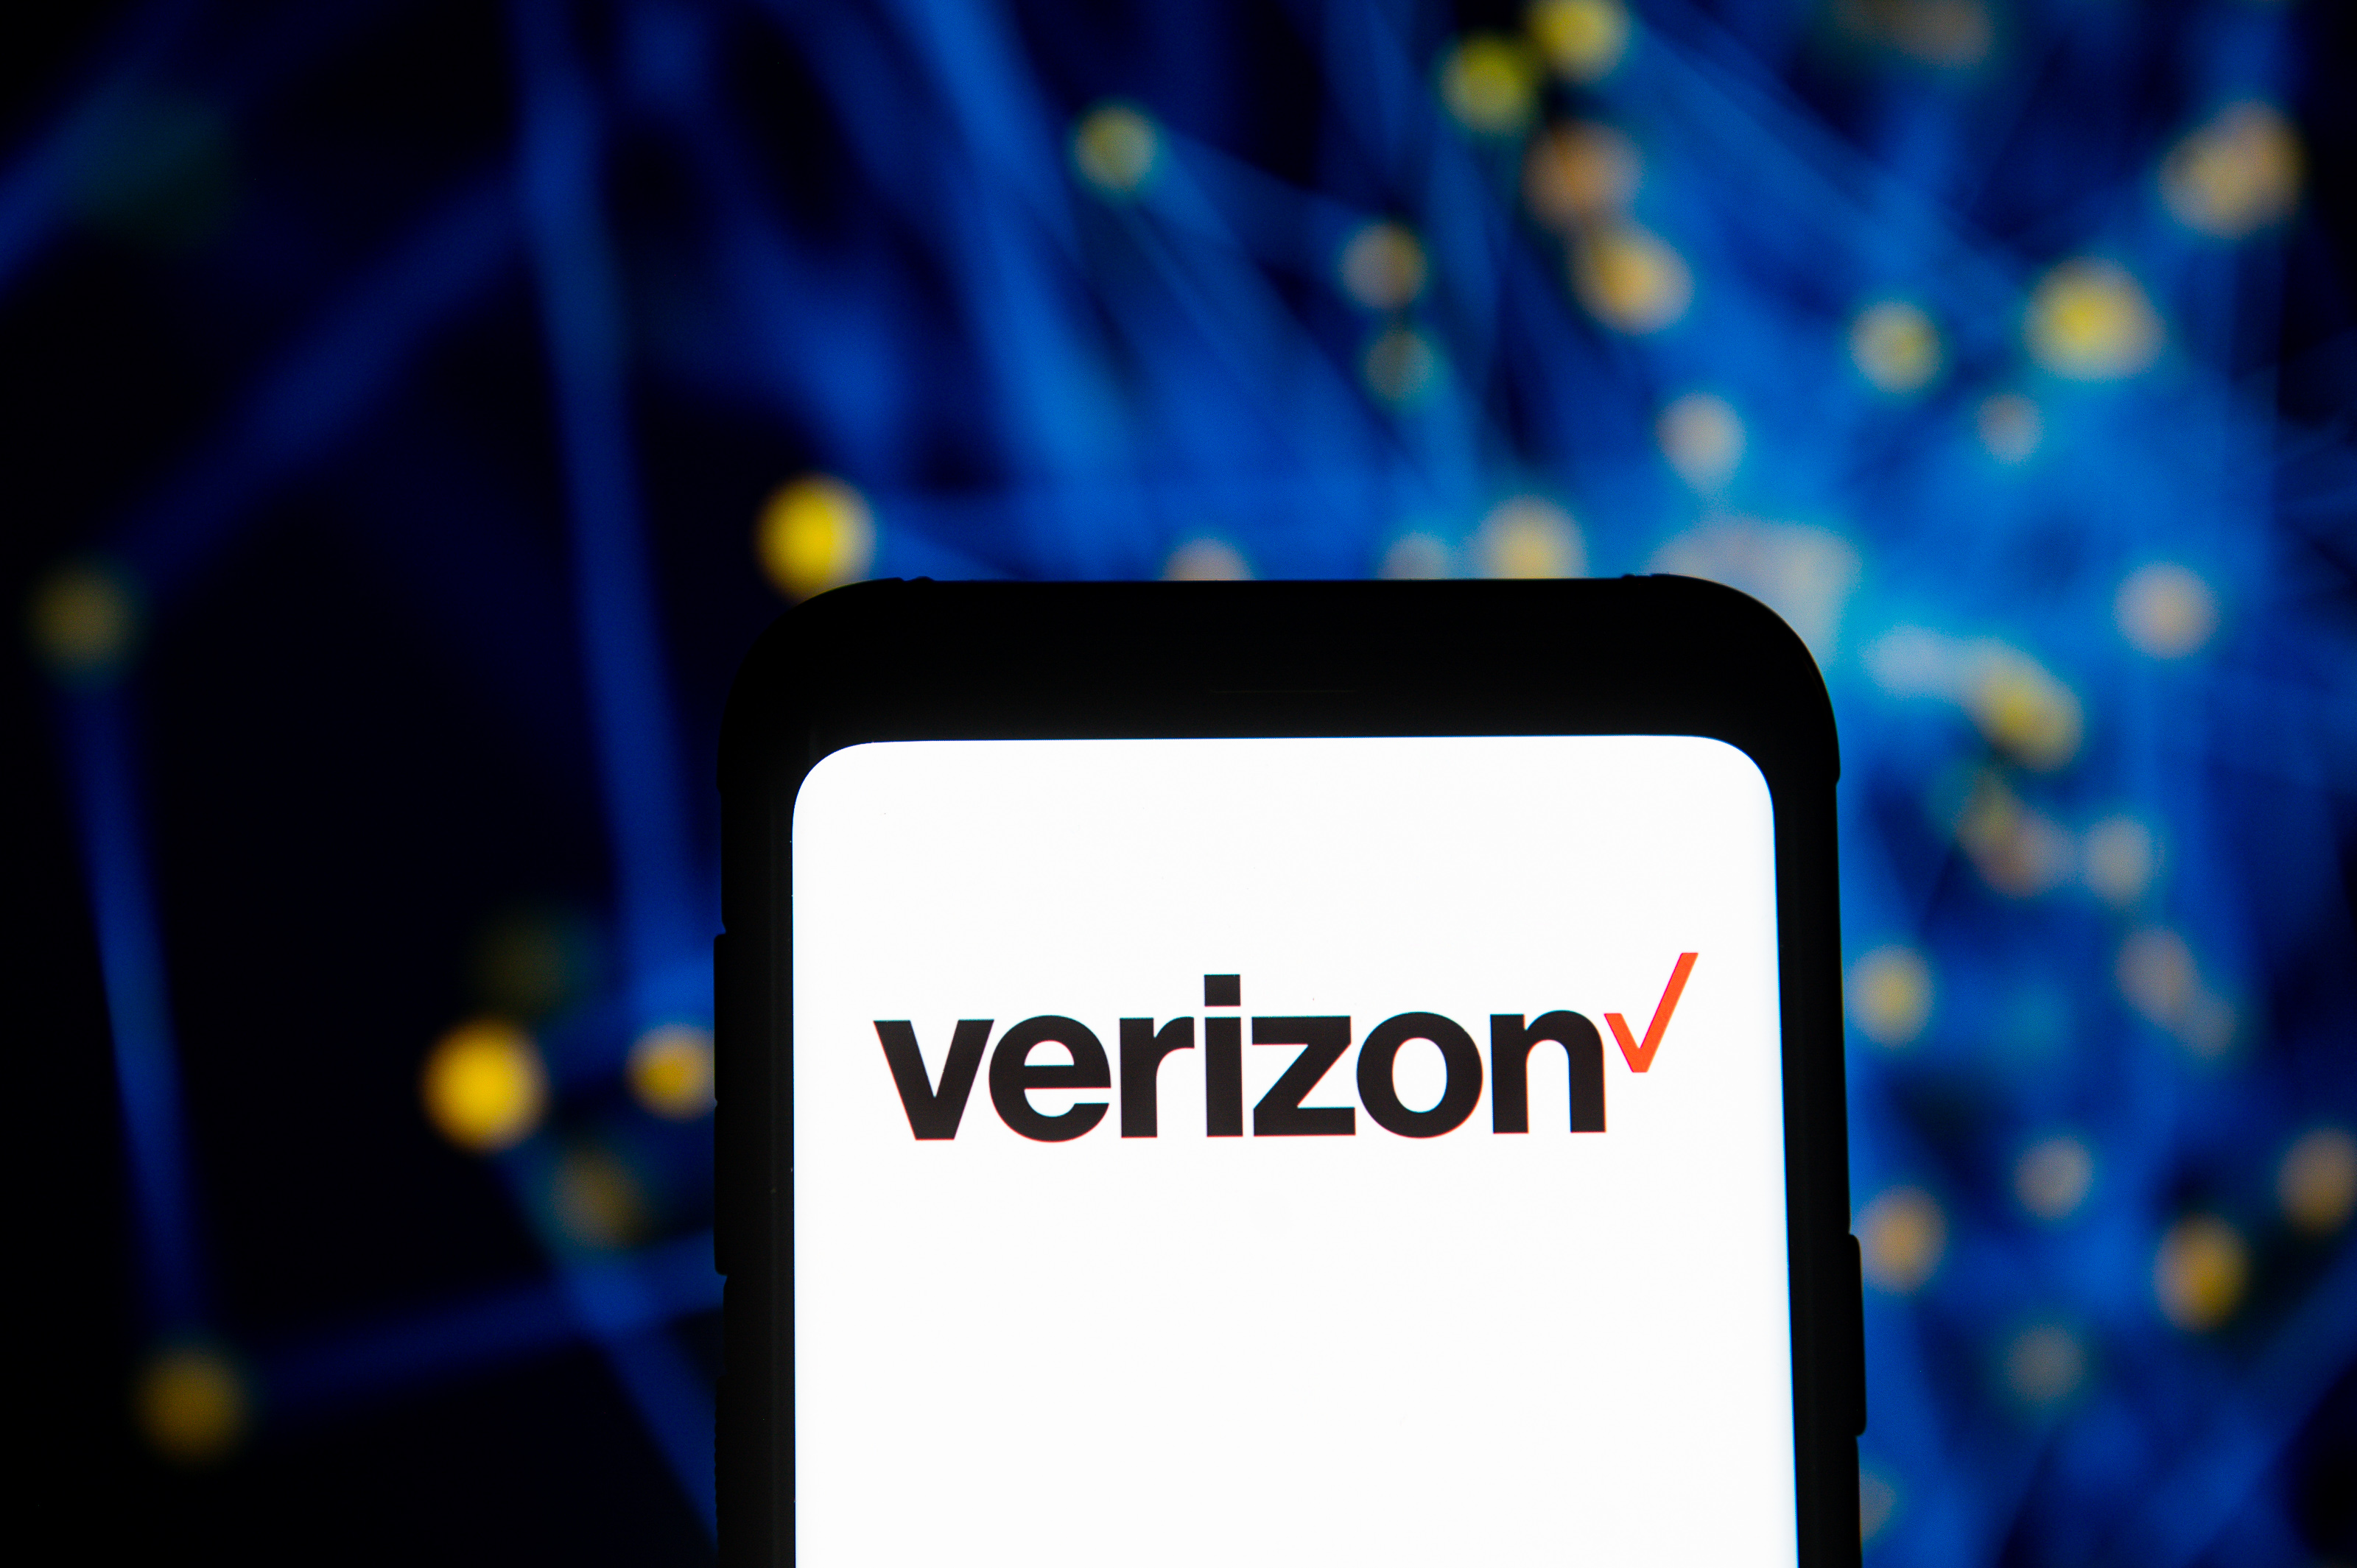 Verizon joins growing list of companies pulling ads from Facebook thumbnail